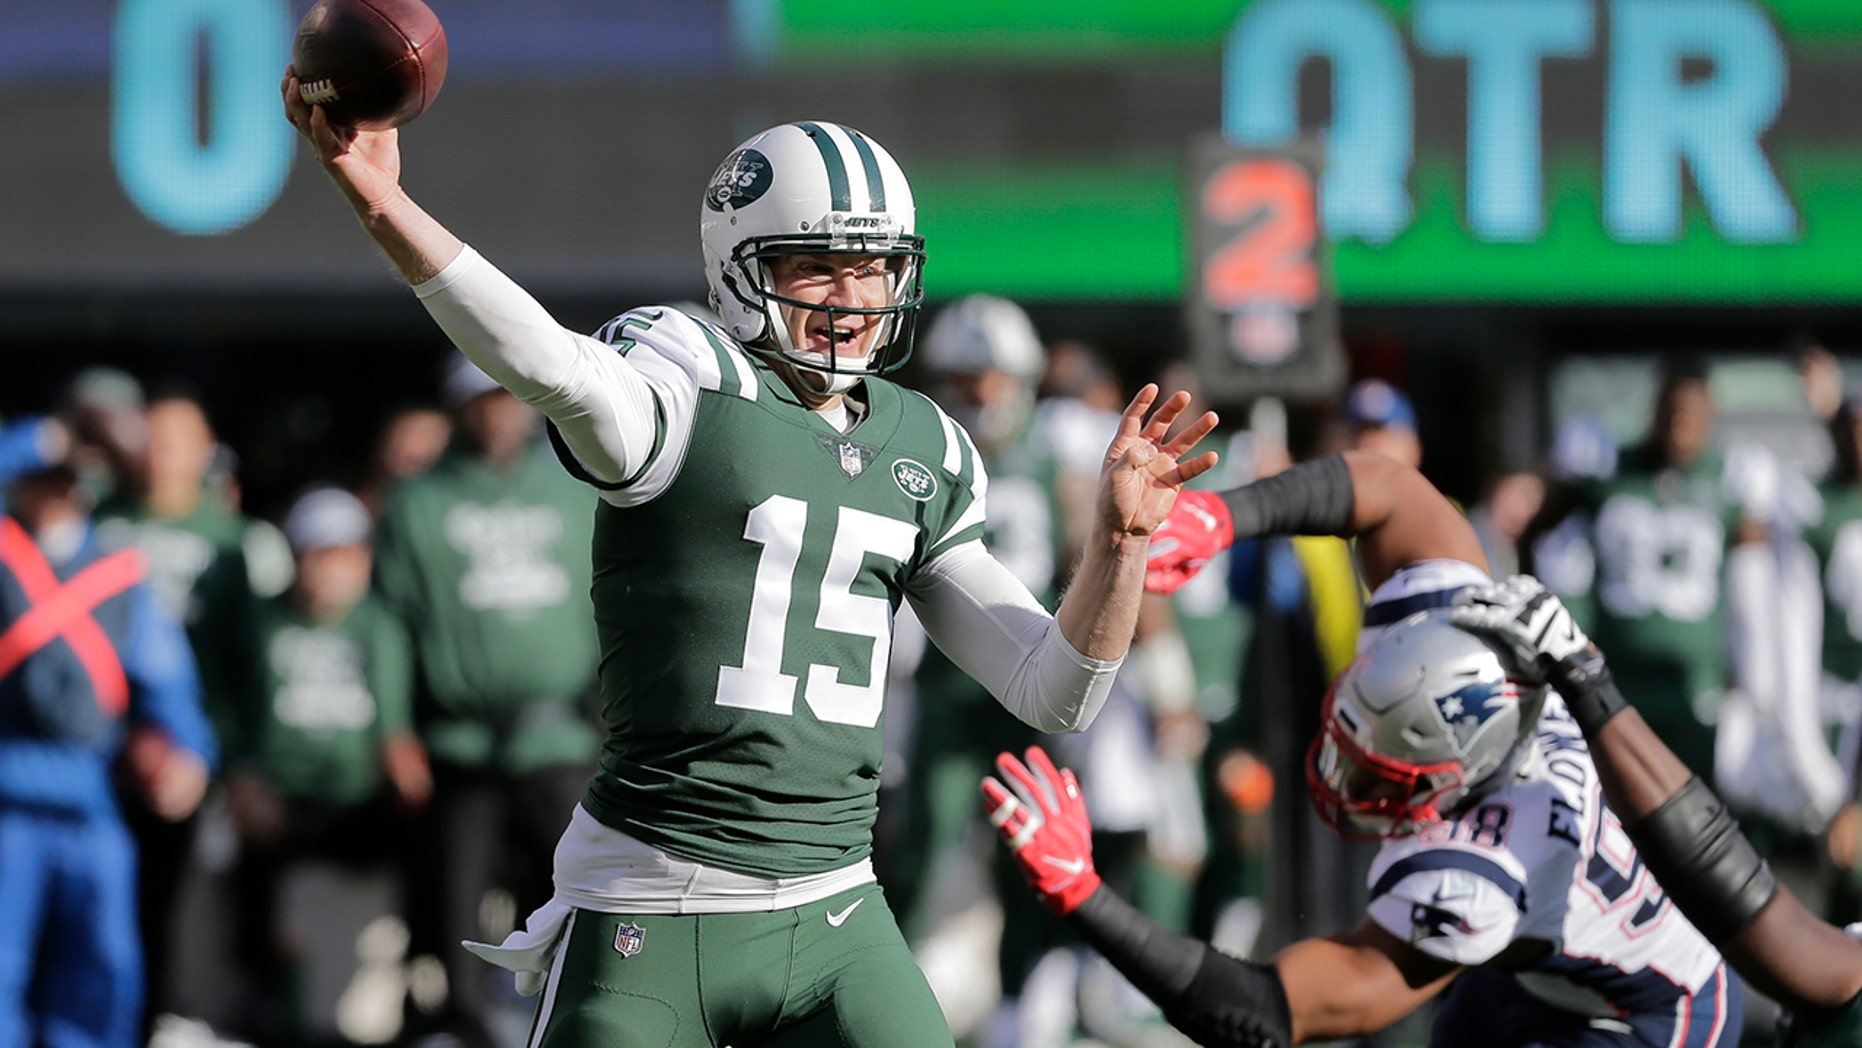 FILE - In this Nov. 25, 2018, file photo, New York Jets quarterback Josh McCown (15) throws a pass during the first half of an NFL football game against the New England Patriots, in East Rutherford, N.J. (AP Photo/Seth Wenig, File)